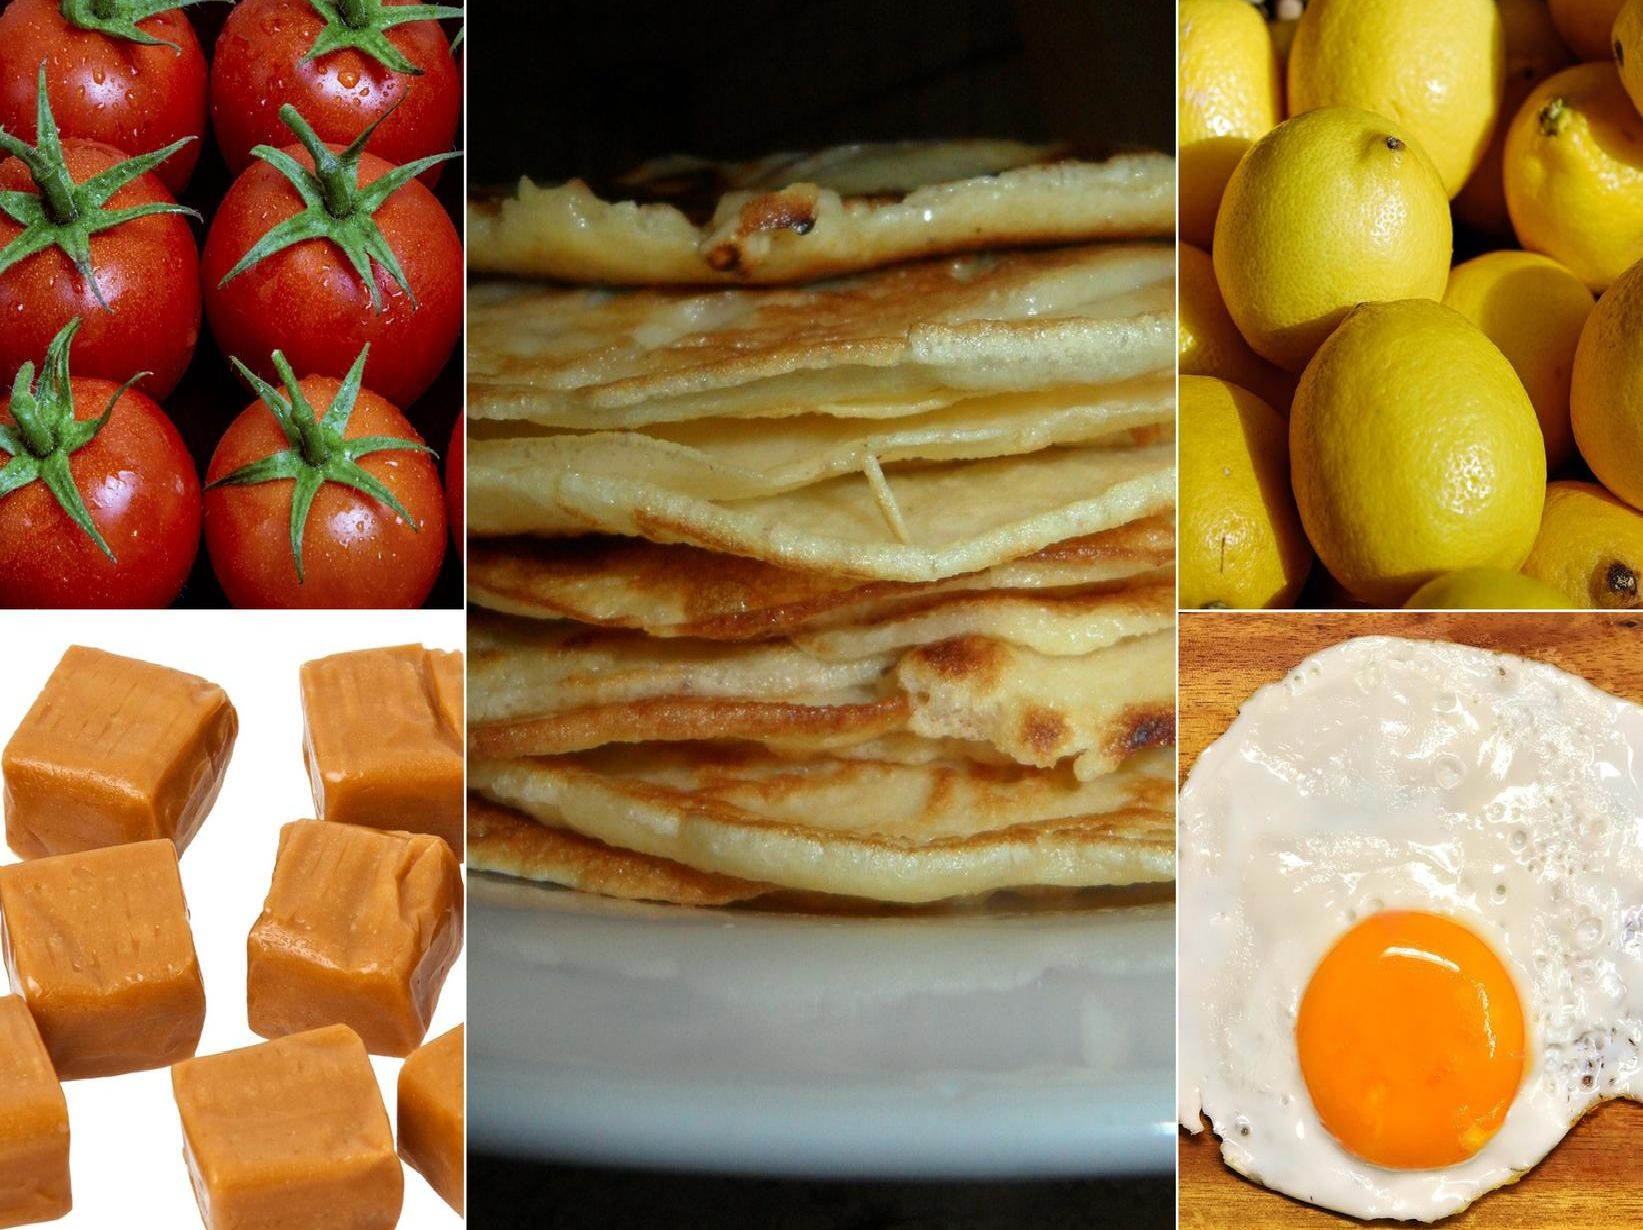 Will you be testing out any of these suggestions on Pancake Day?